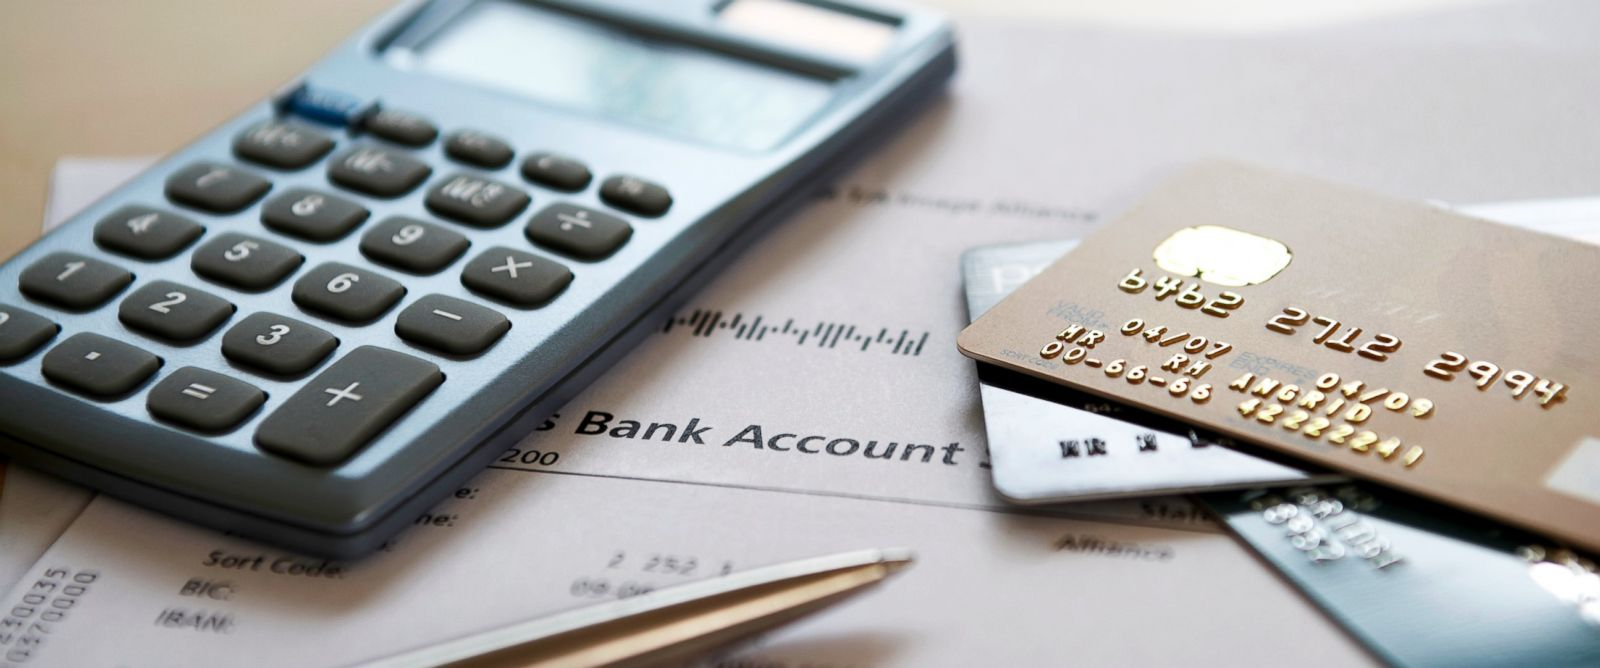 Which Are The Most Special Features Of Personal Loan Without Credit Check?